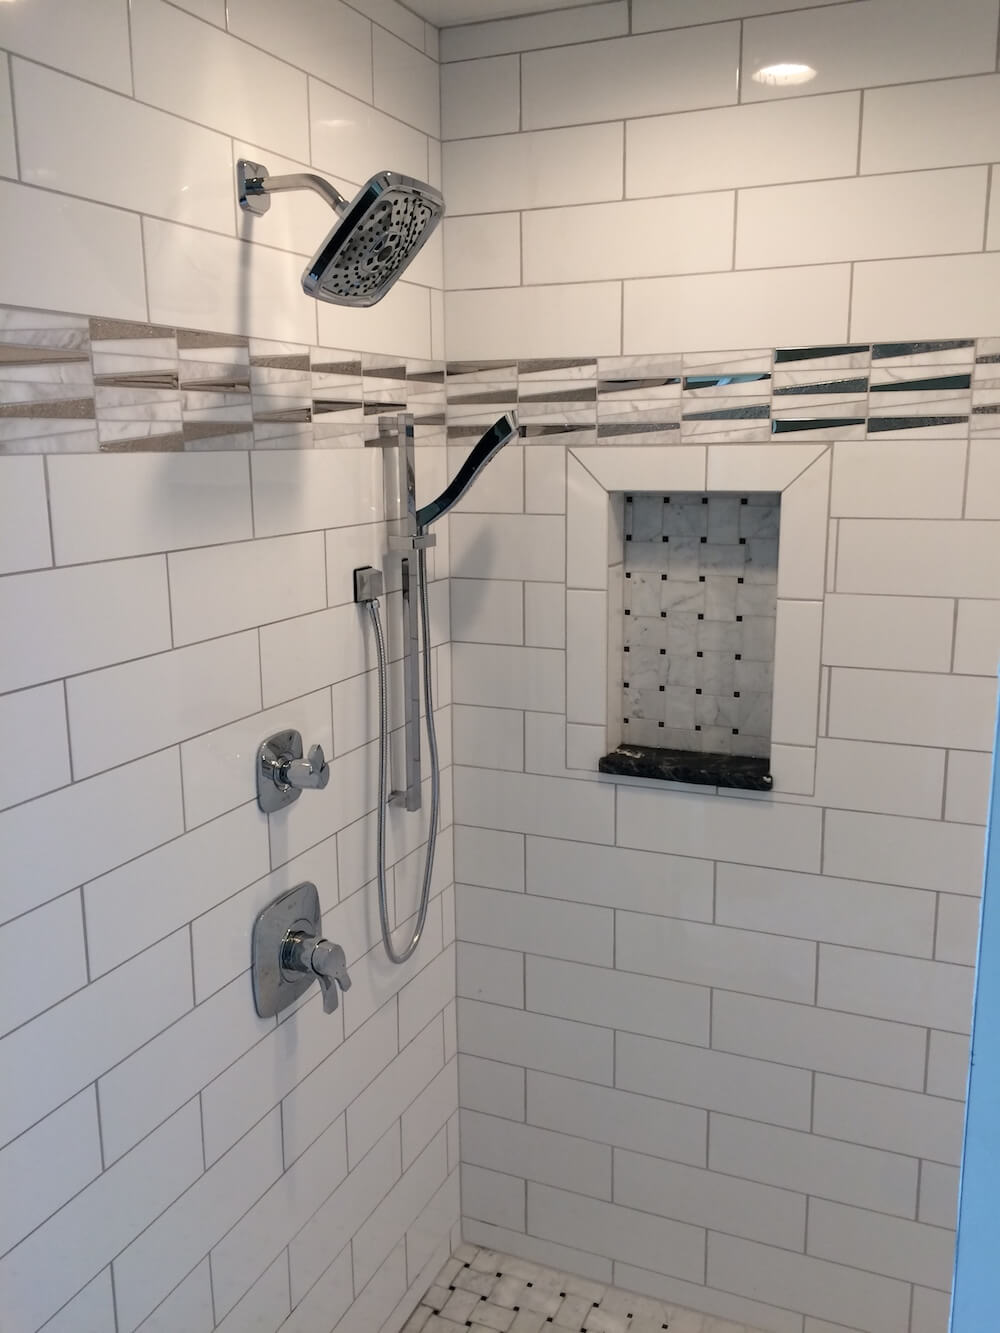 2019 Regrouting Shower Tile Cost Regrout Shower Price